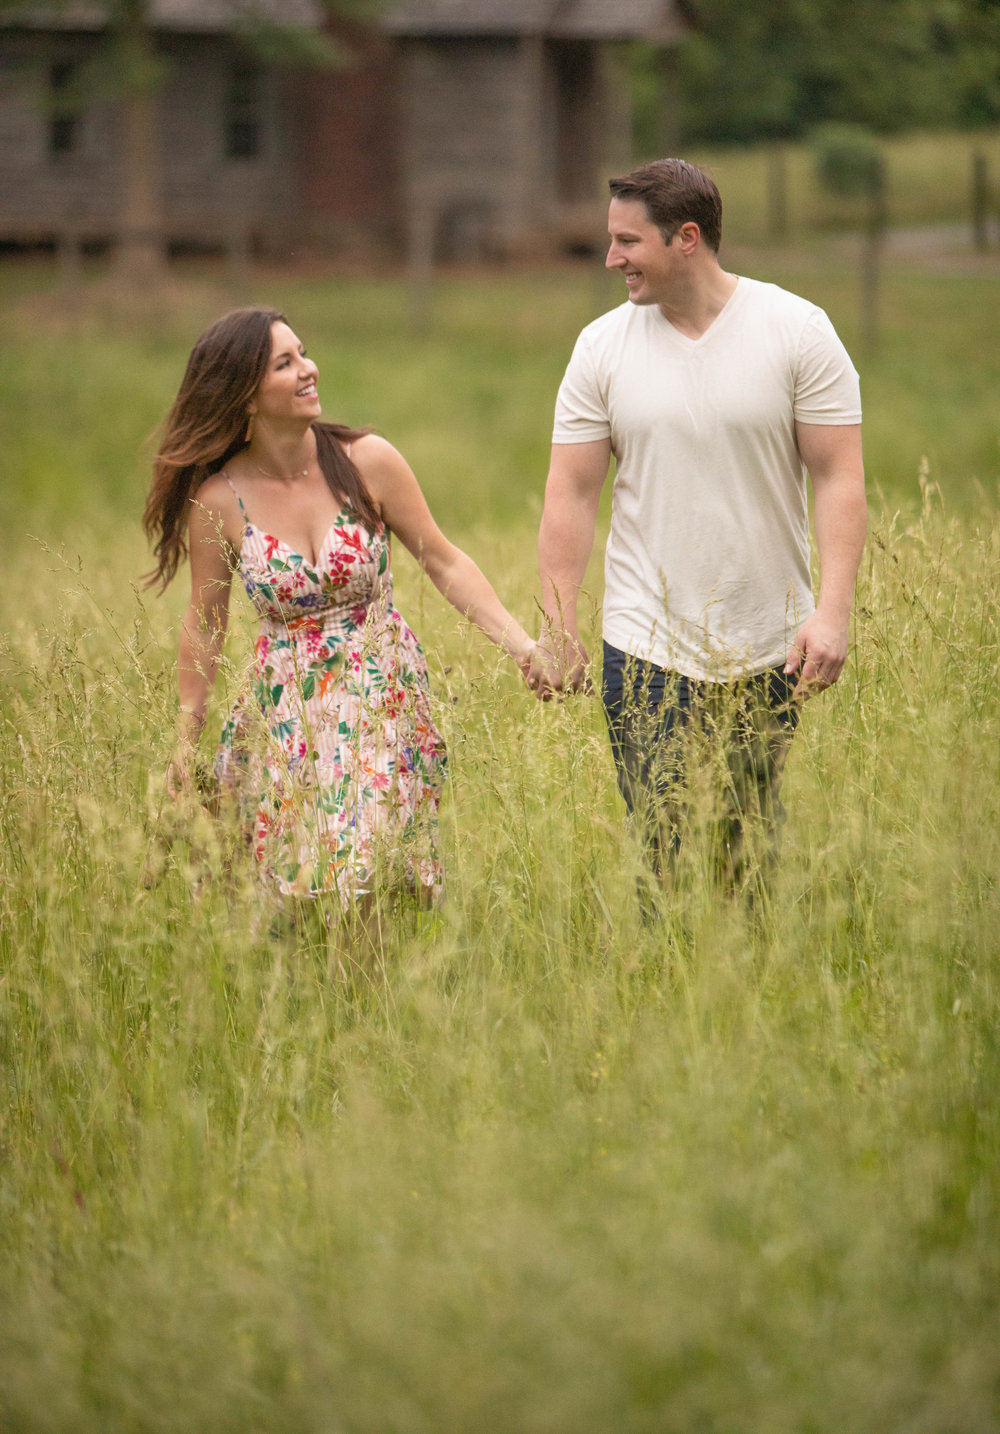 Engagement Photo by the Atlanta Wedding Photographers at www.AtlantaArtisticWeddings.com